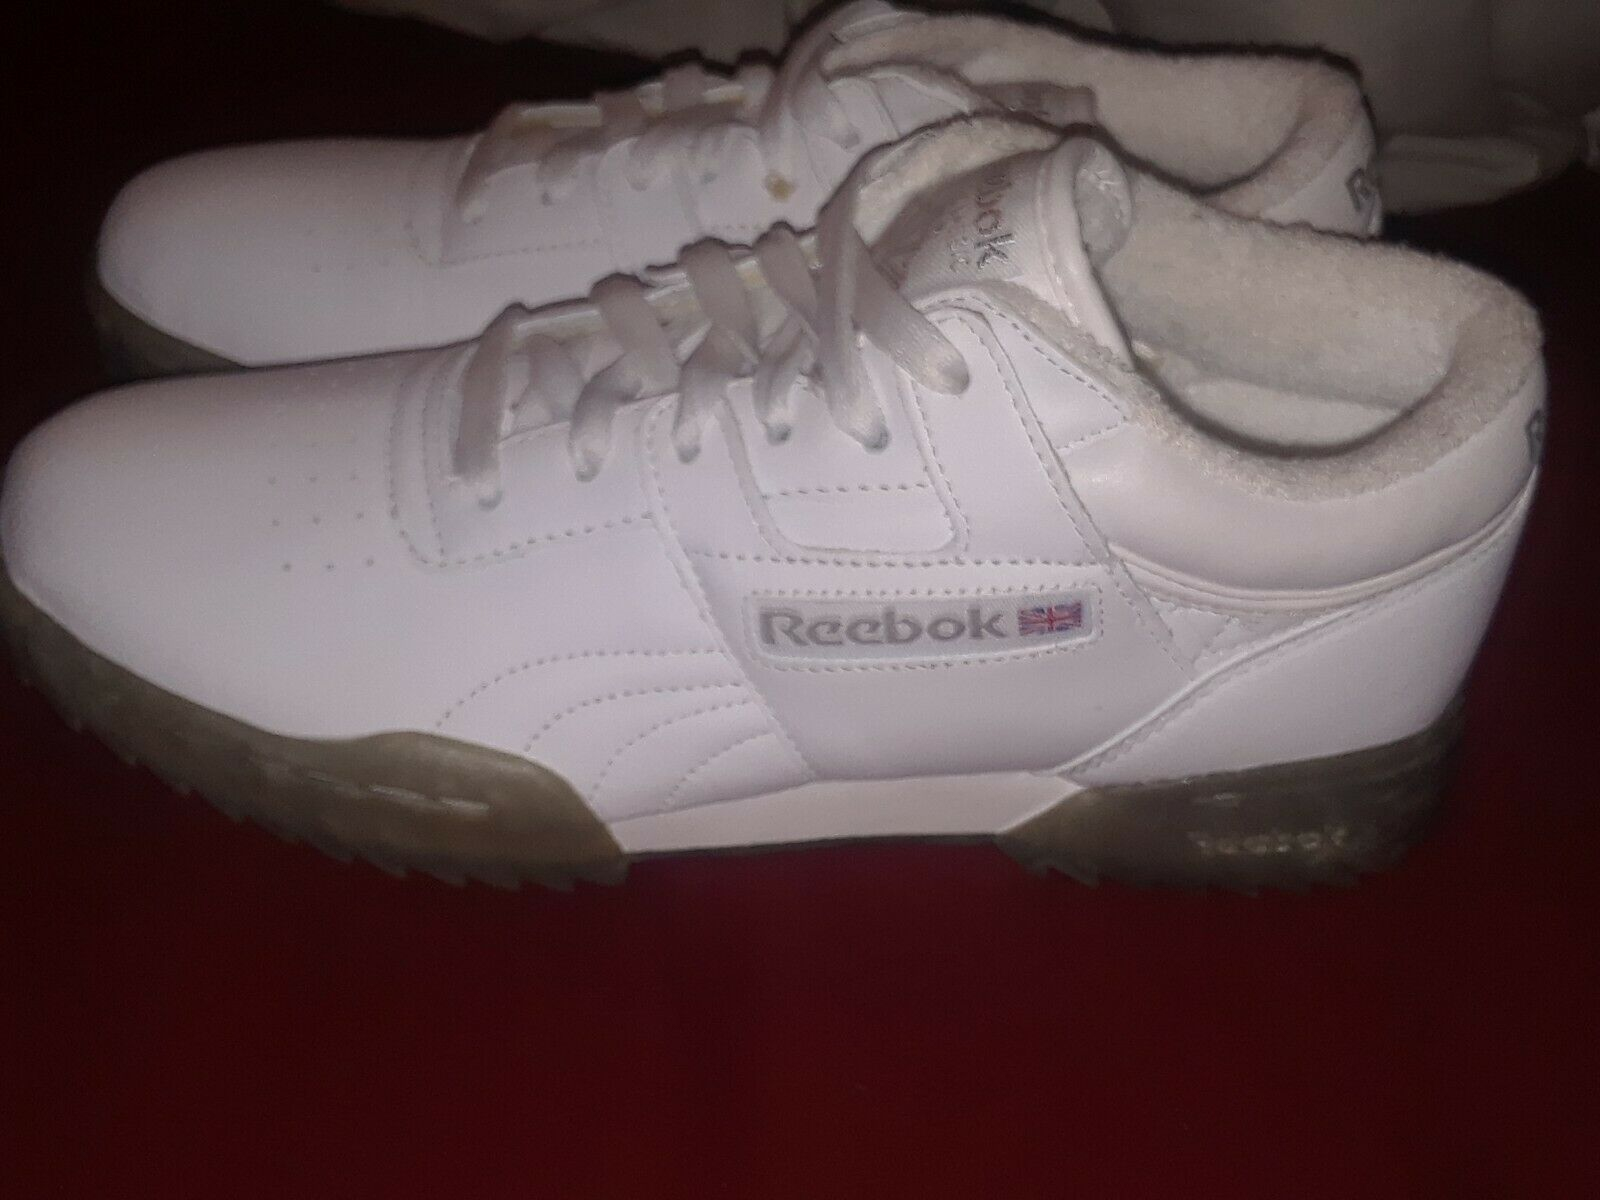 MENS REEBOK 2003 WORKOUT RIPPLE W SIL SIZE 7.5 US RARE ITEM